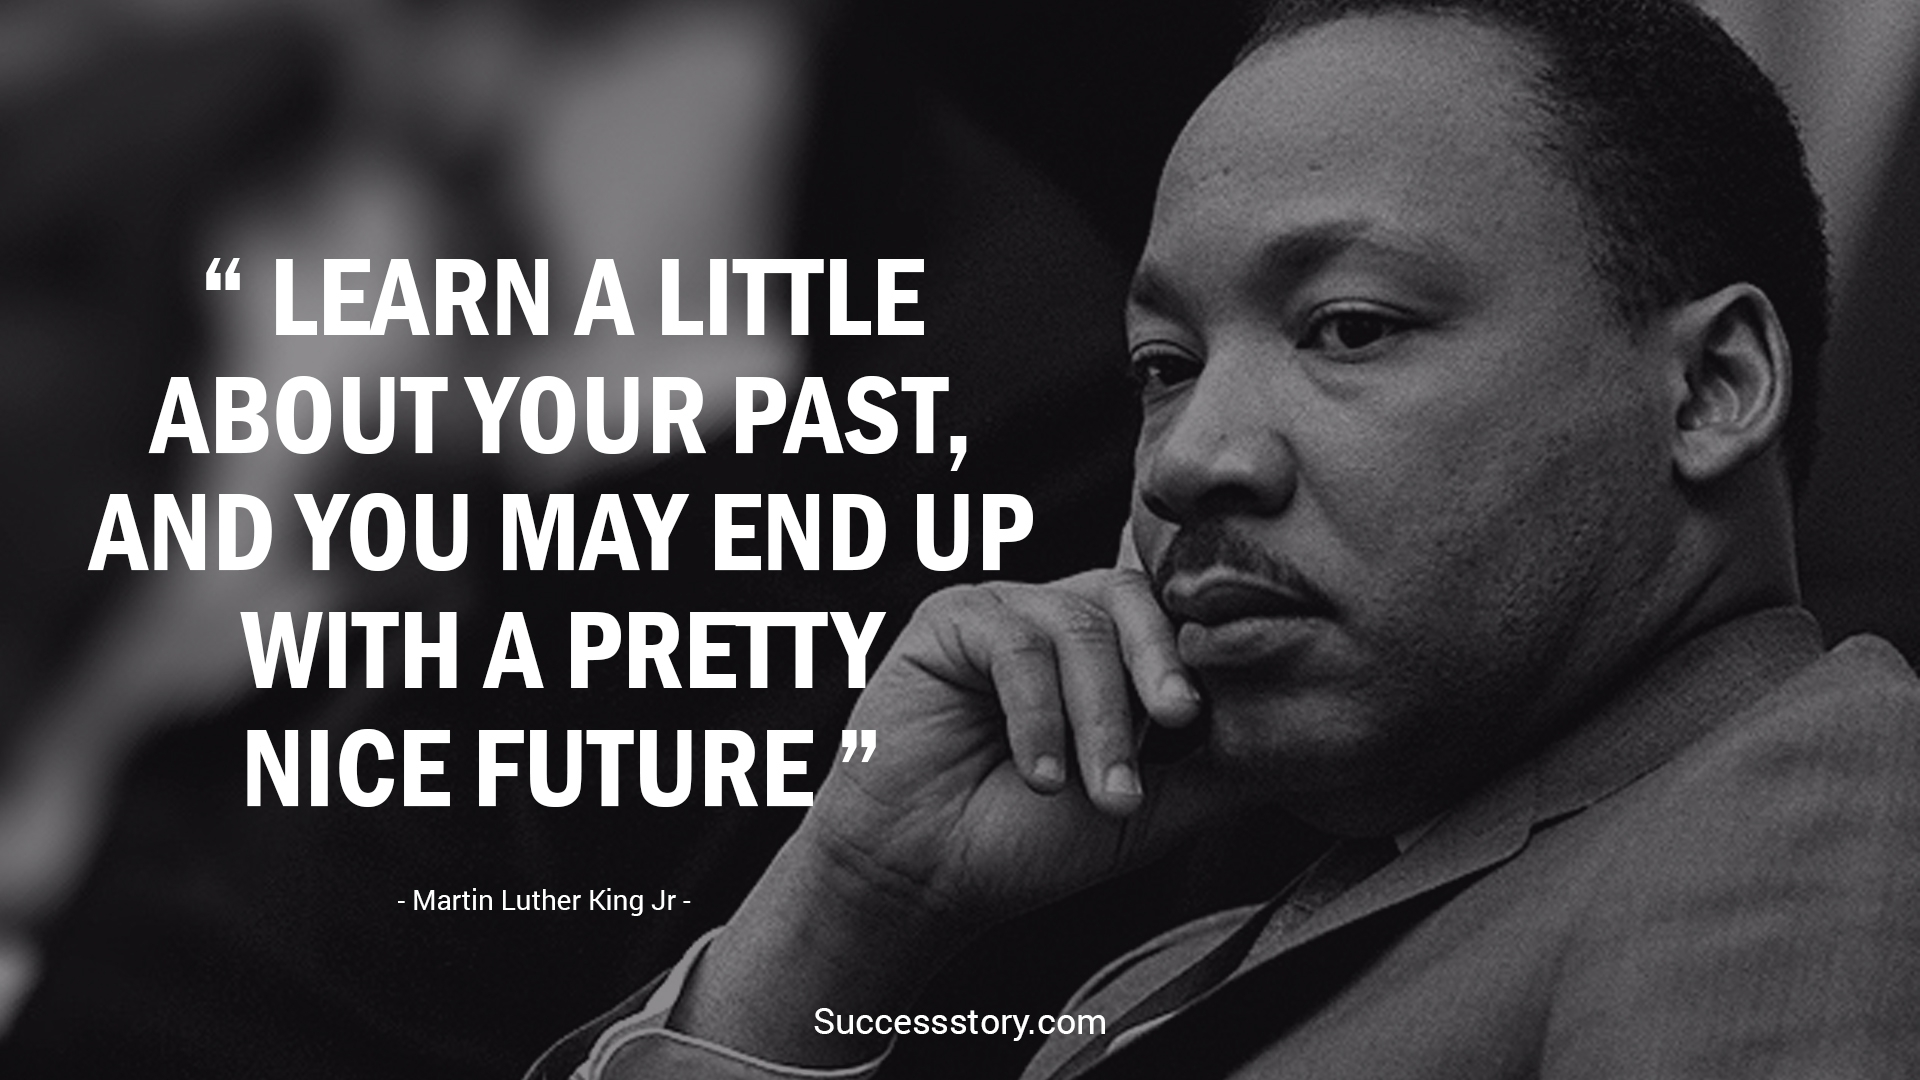 Famous Martin Luther King Jr. Quotes